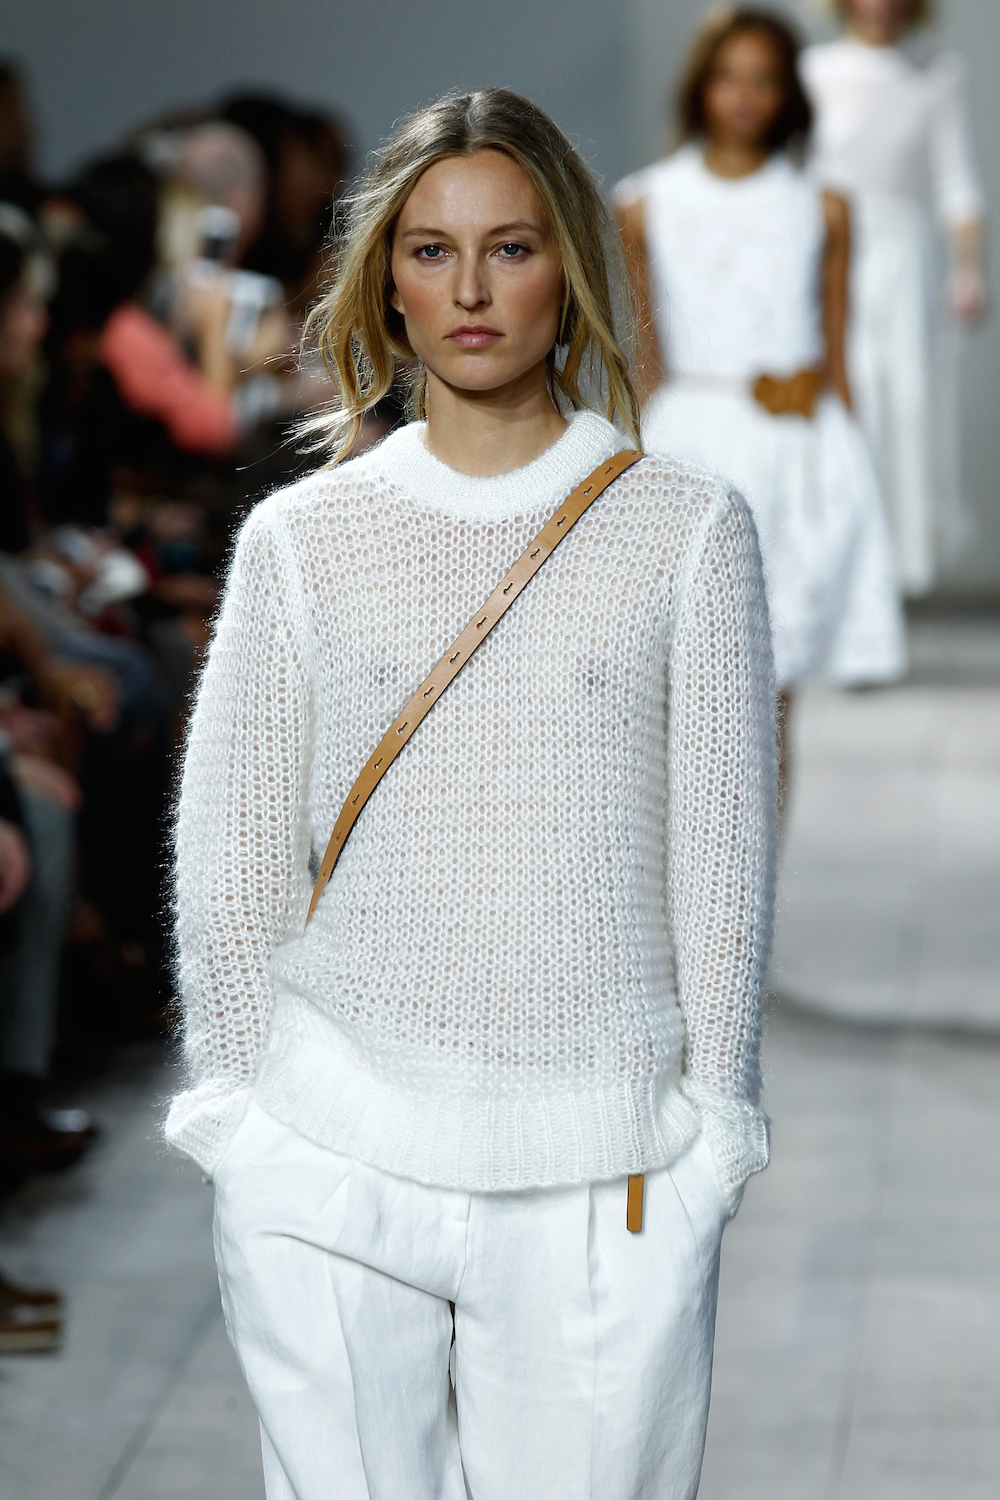 Michael Kors Spring 2015 Fashion Show - Runway